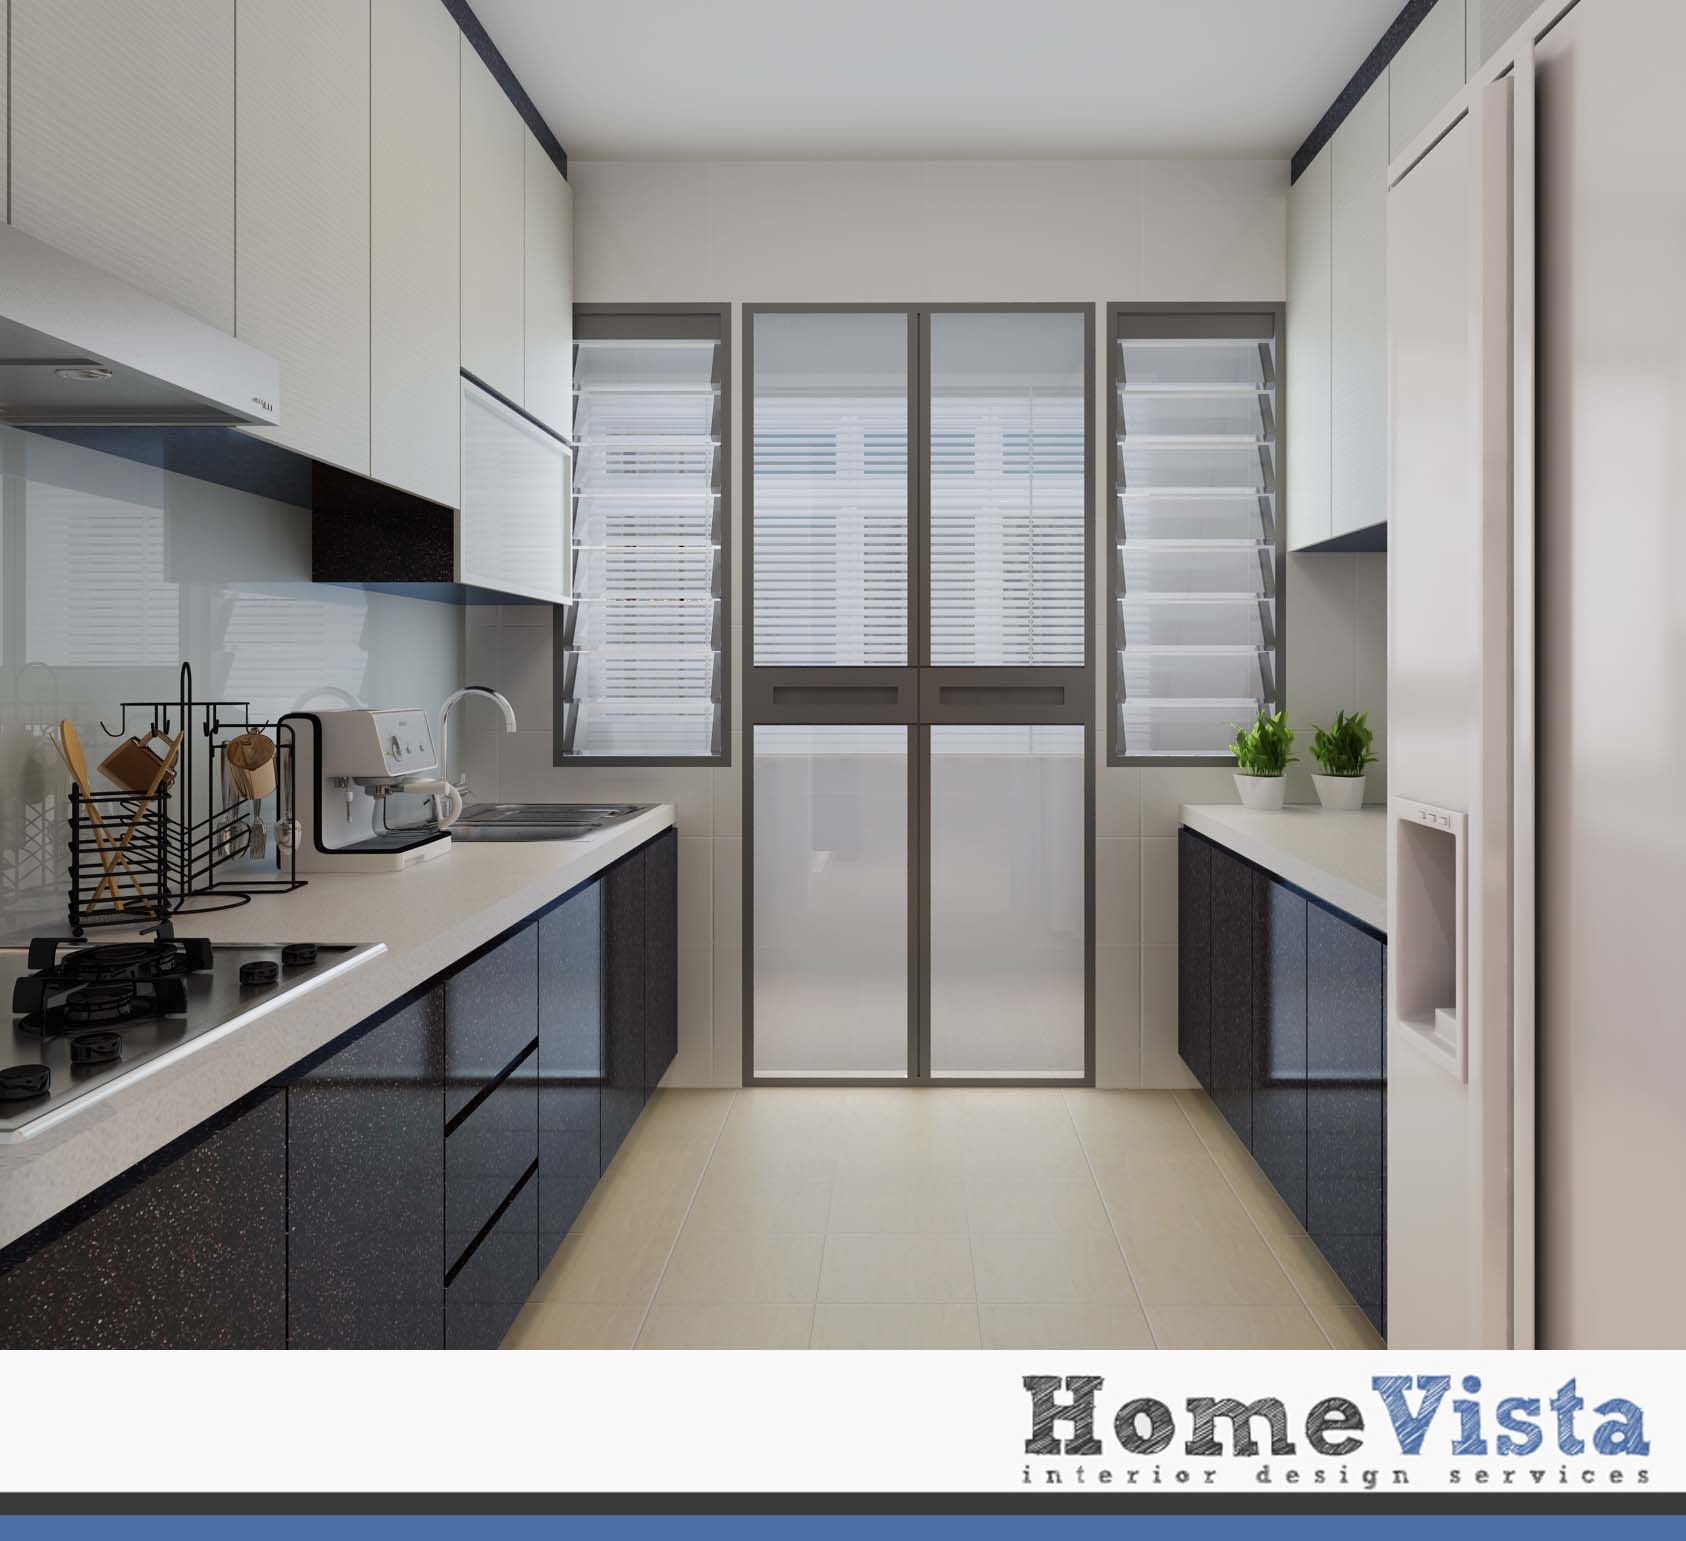 Best 4 Room Bto Yishun Hdb Bto Homevista Home Decor Kitchen 640 x 480